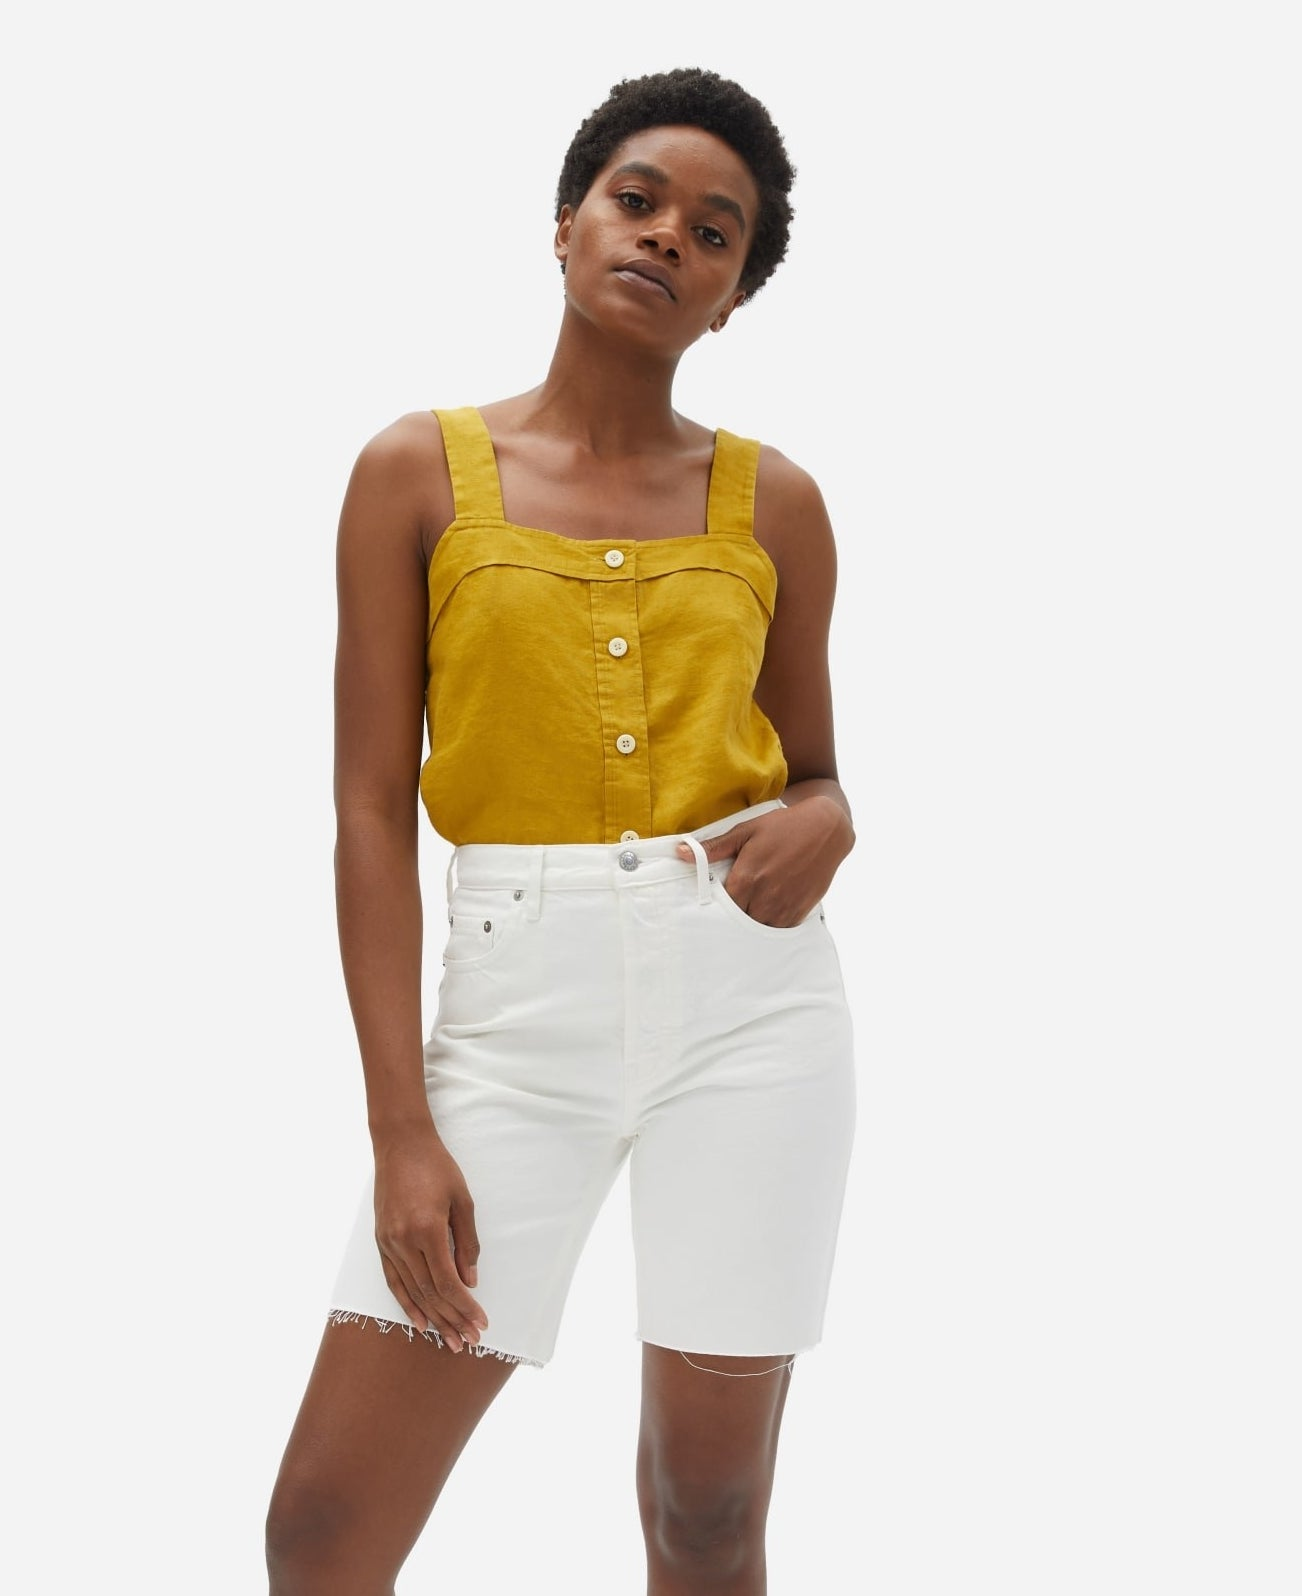 model in yellow tank with wide straps and buttons up the middle